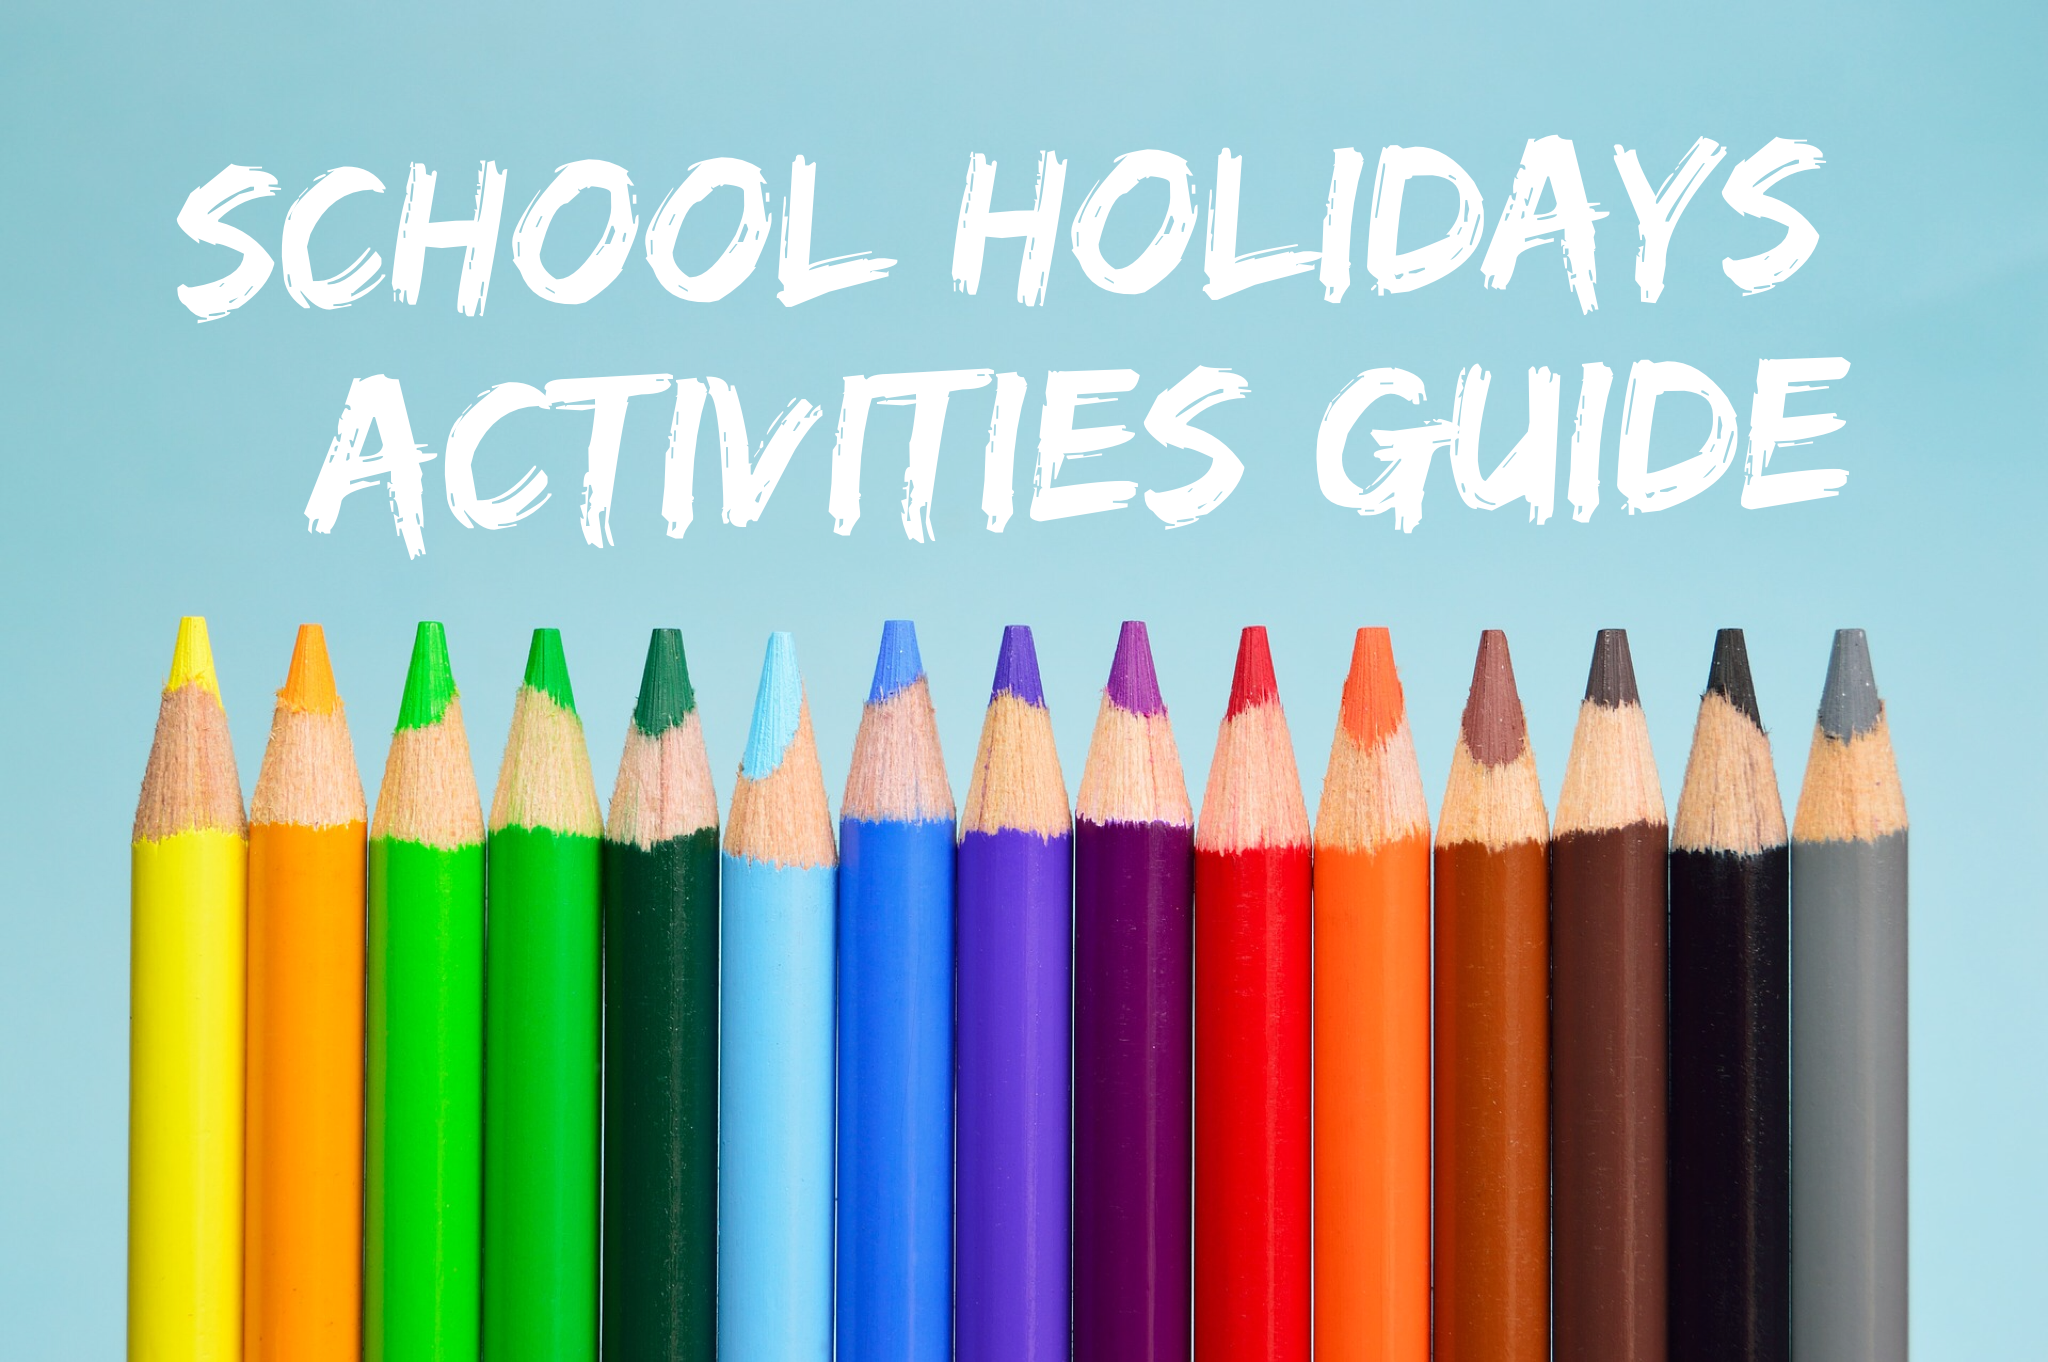 December/January School Holidays Activities Guide